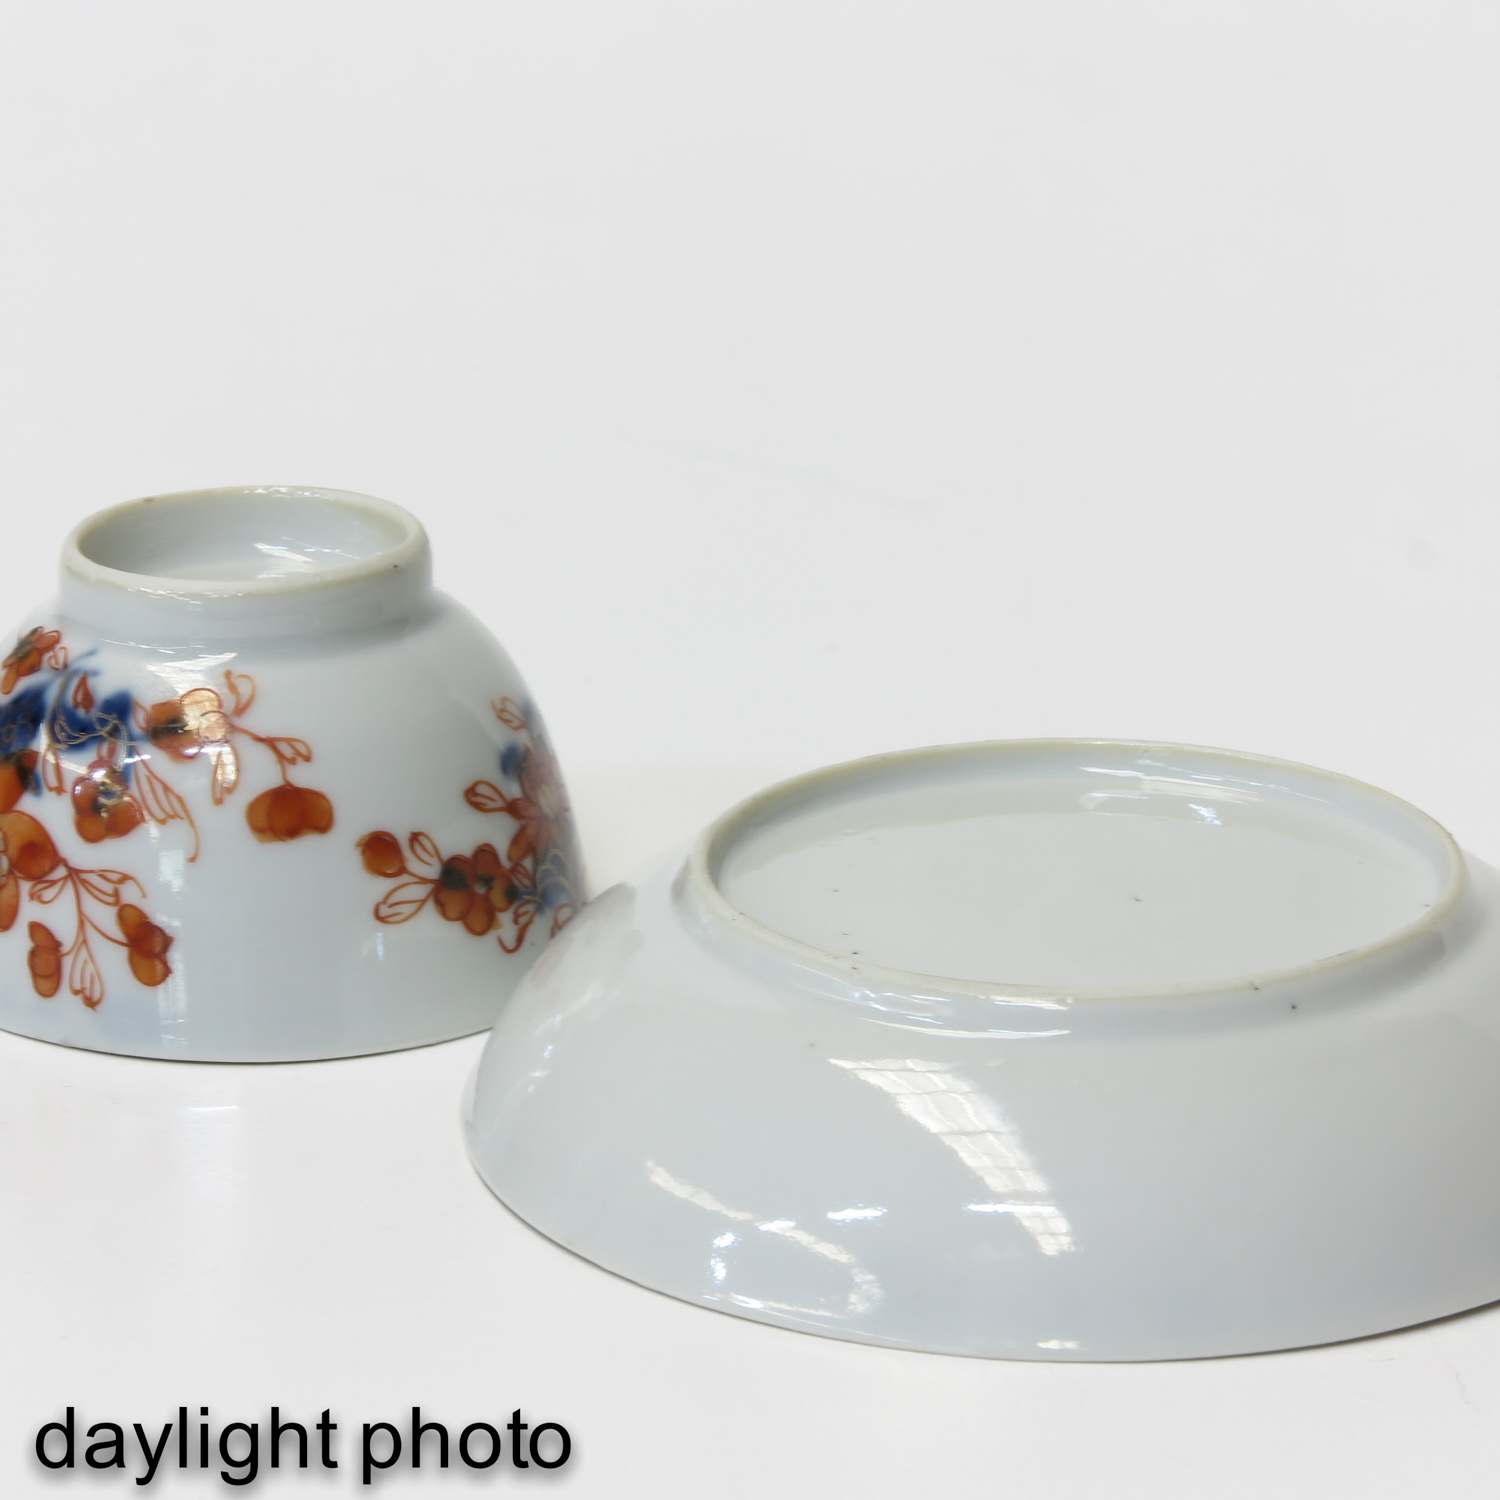 A Collection of Imari Cups and Saucers - Image 10 of 10